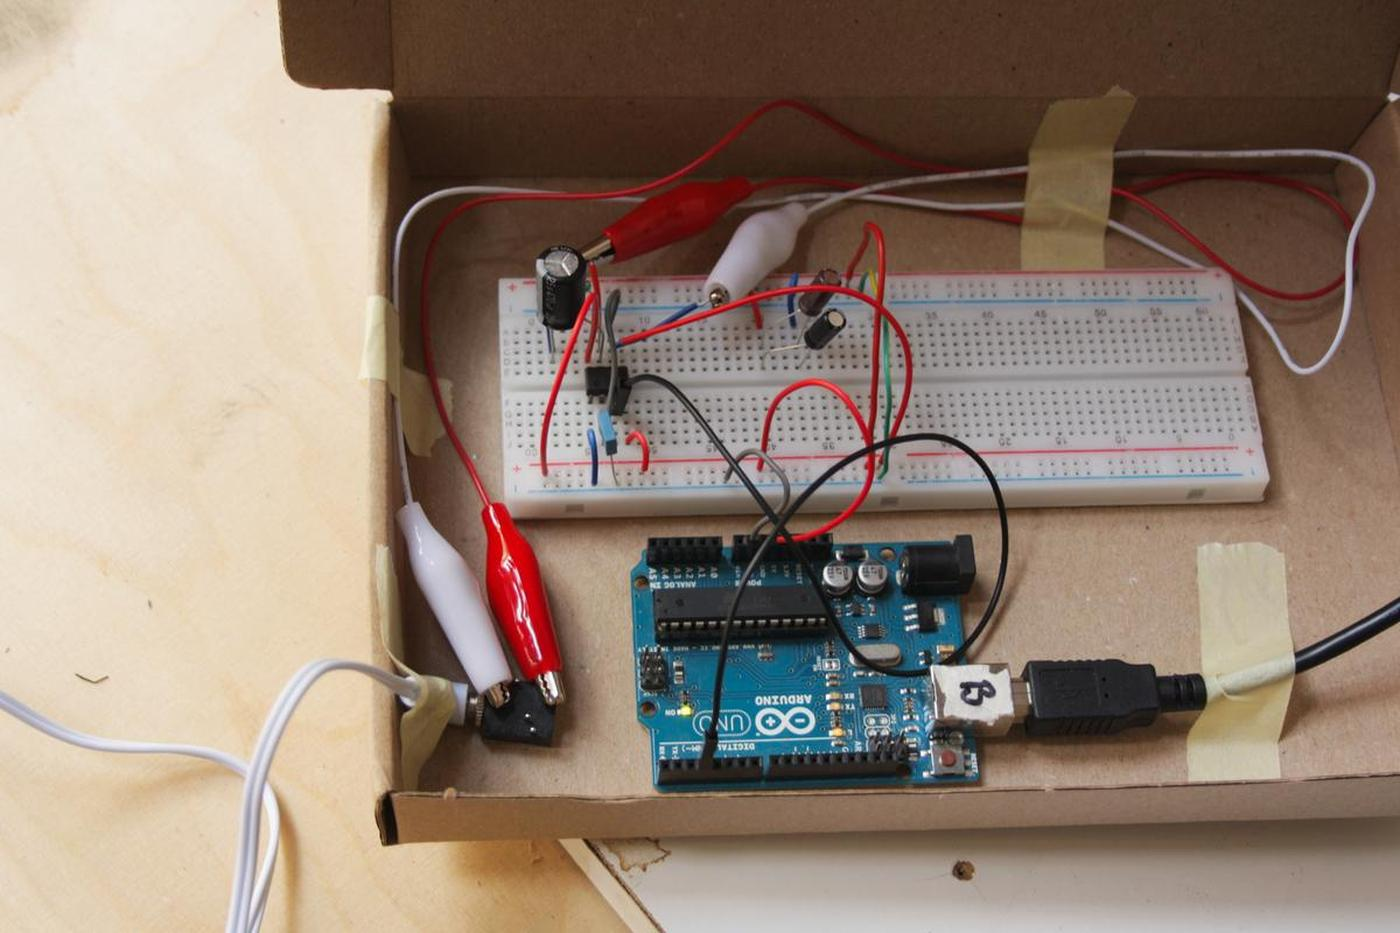 Arduino and components